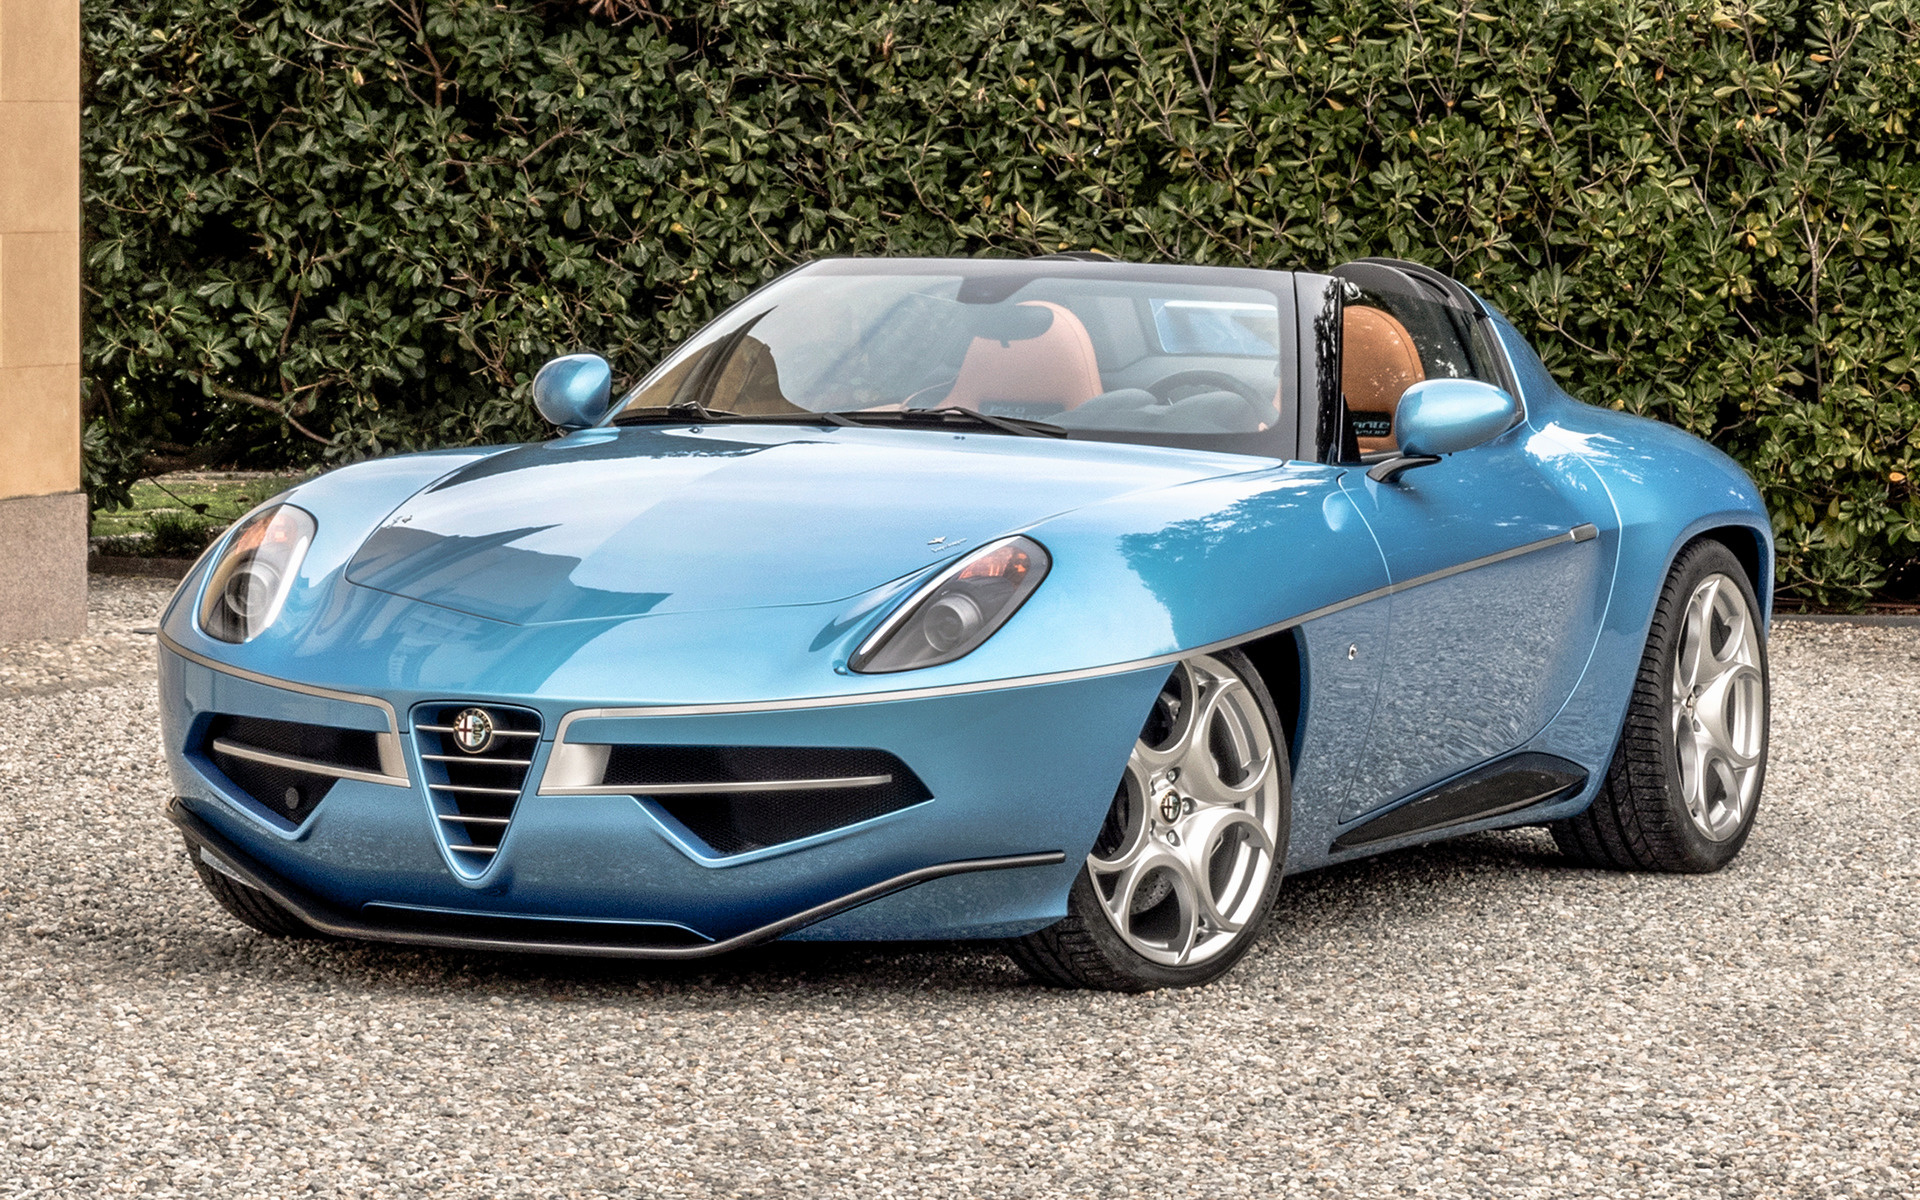 Alfa Romeo Disco Volante >> 2016 Alfa Romeo Disco Volante Spyder [#1] - Wallpapers and ...